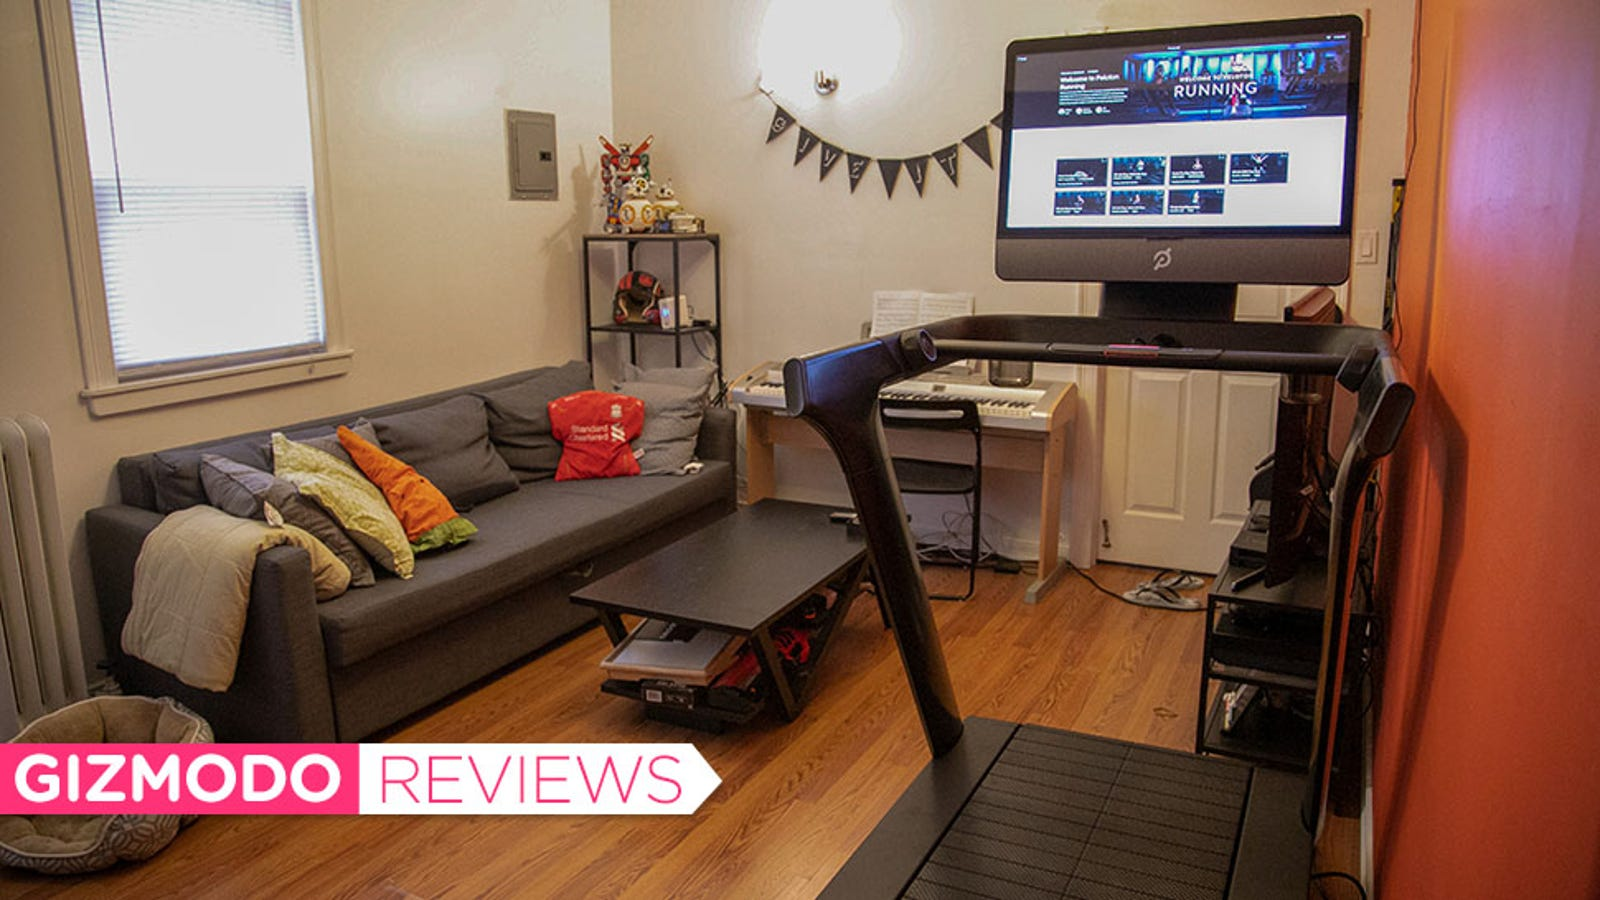 QnA VBage Peloton's $4,000 Treadmill Makes Me Wish I Was Rich Enough to Afford It